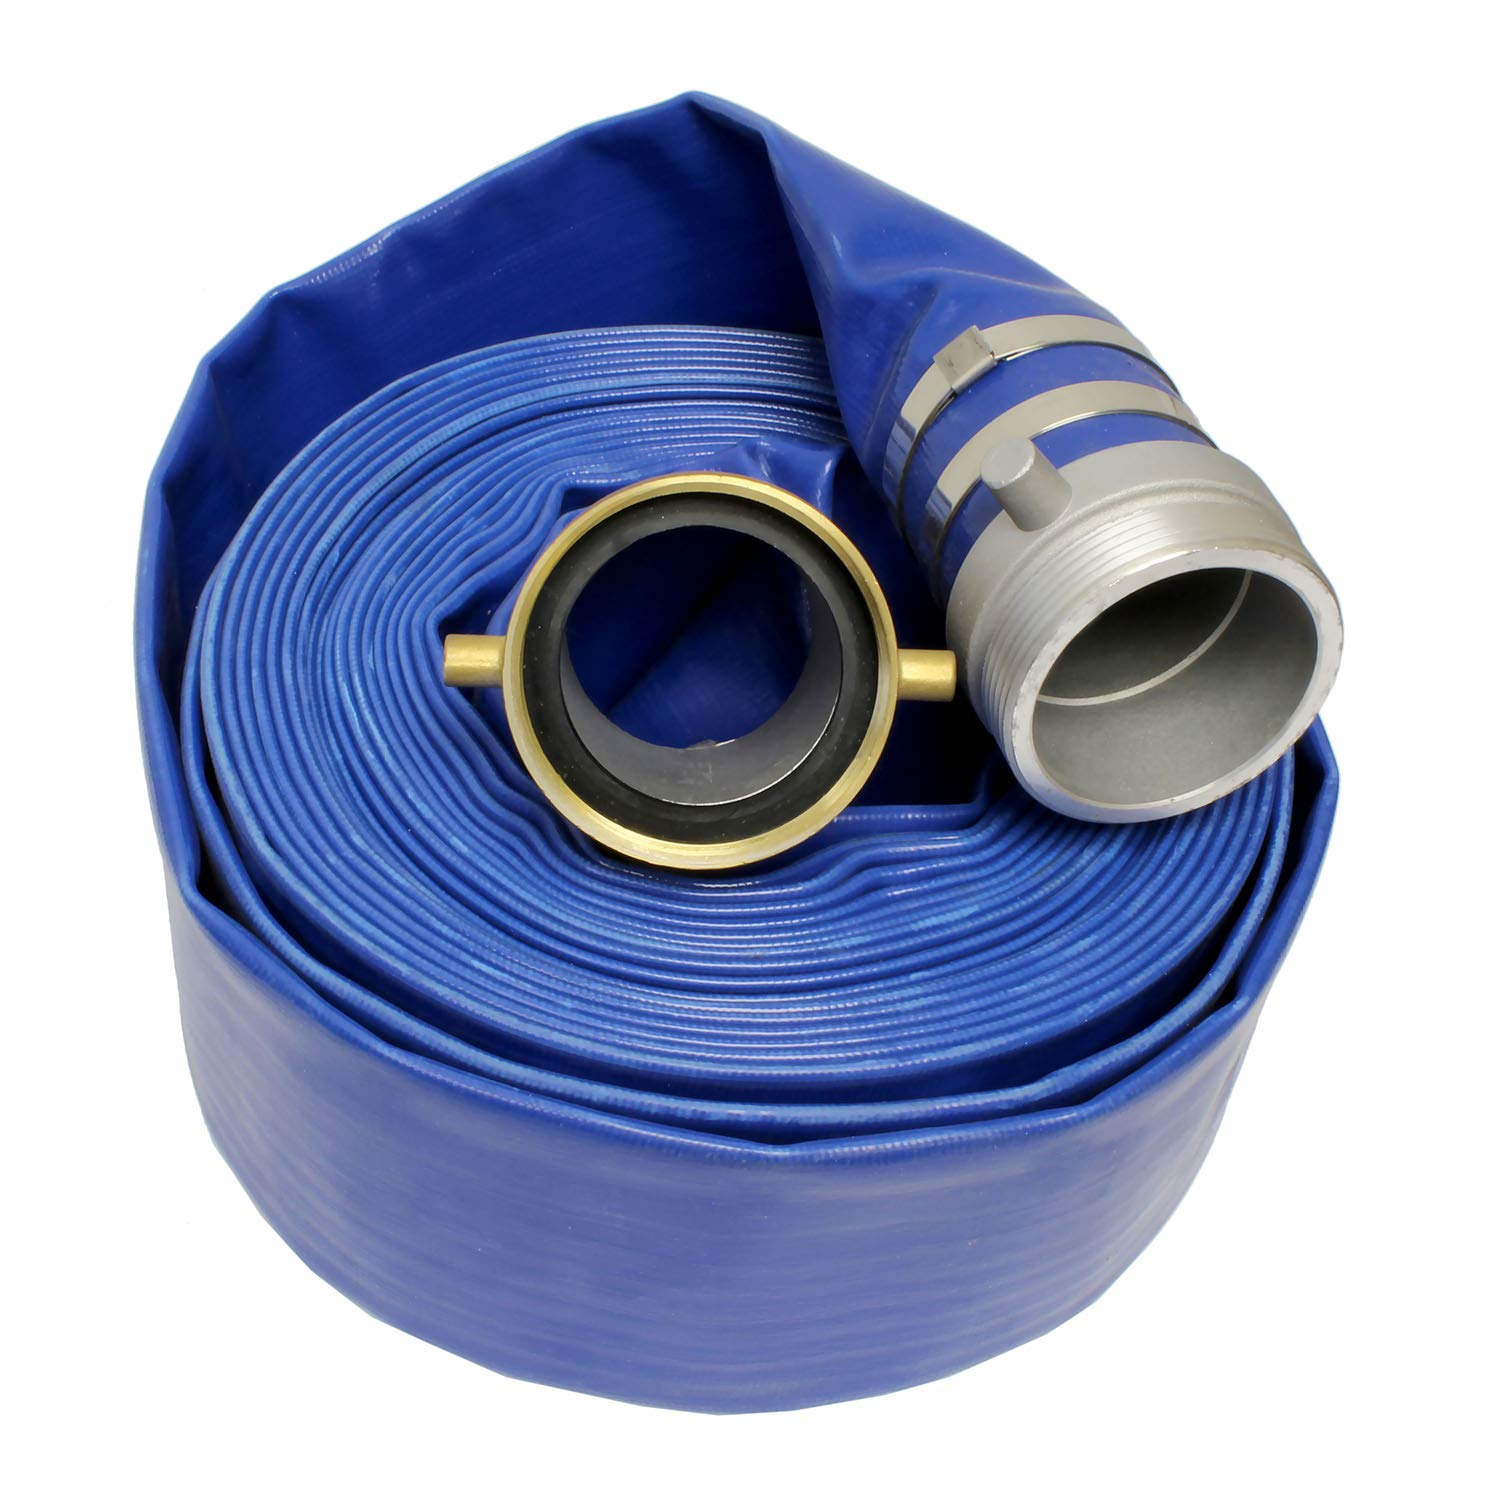 BISupply Lay Flat Hose 3'' in x 50' Ft Flat Discharge Hose & Aluminum Pin Lugs - PVC Pool Hose Heavy Duty Backwash Hose by BISupply